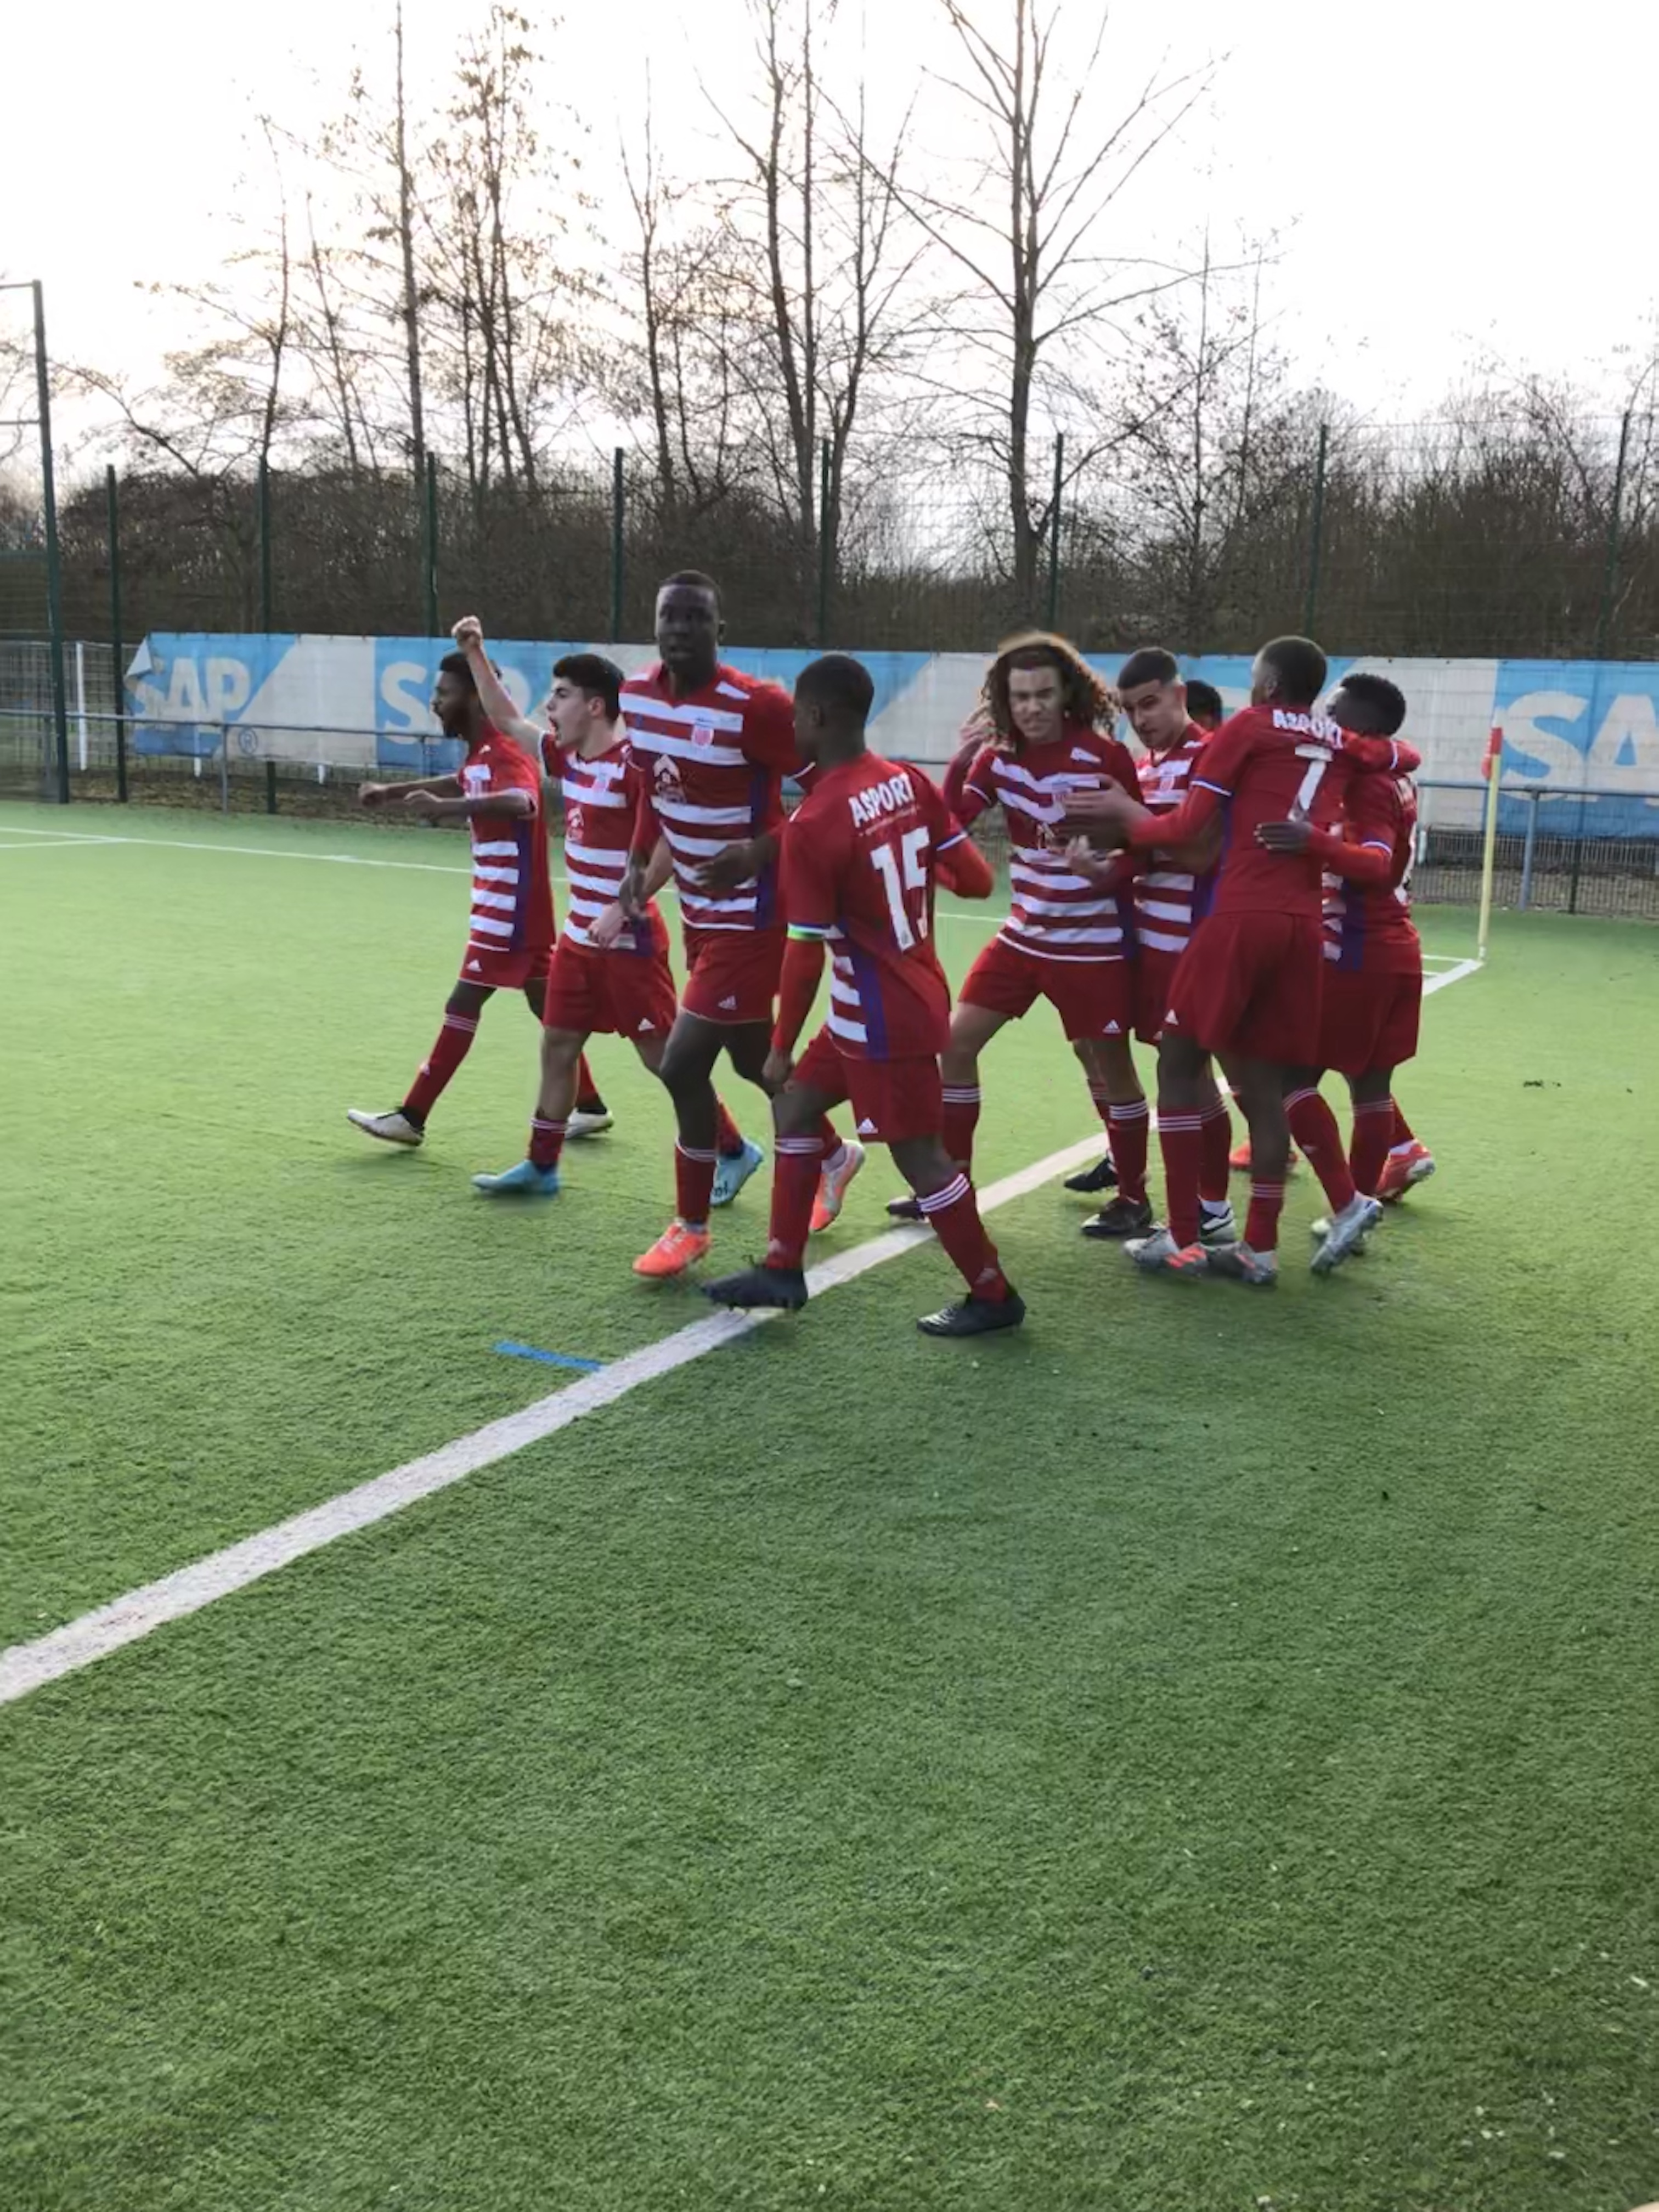 CS FOLA - RFCUL 3-0 belle qualification pour la 1/2 finale de Coupe du Prince